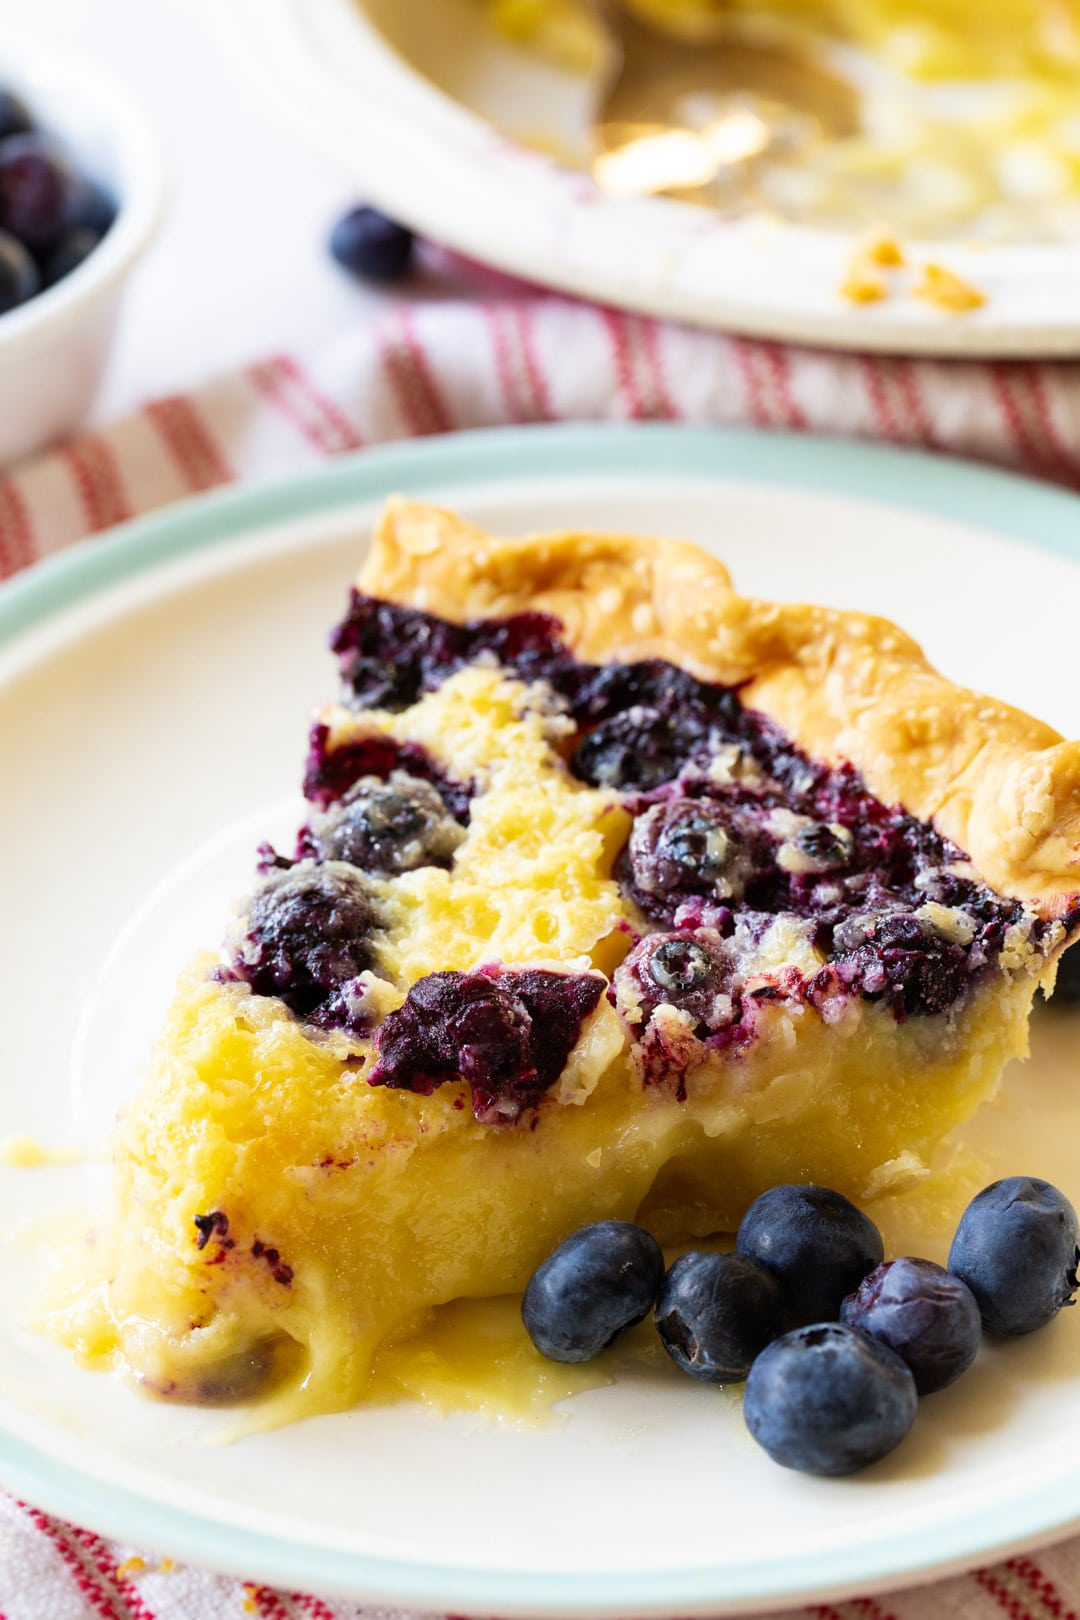 Slice of pie on a plate with blueberries.